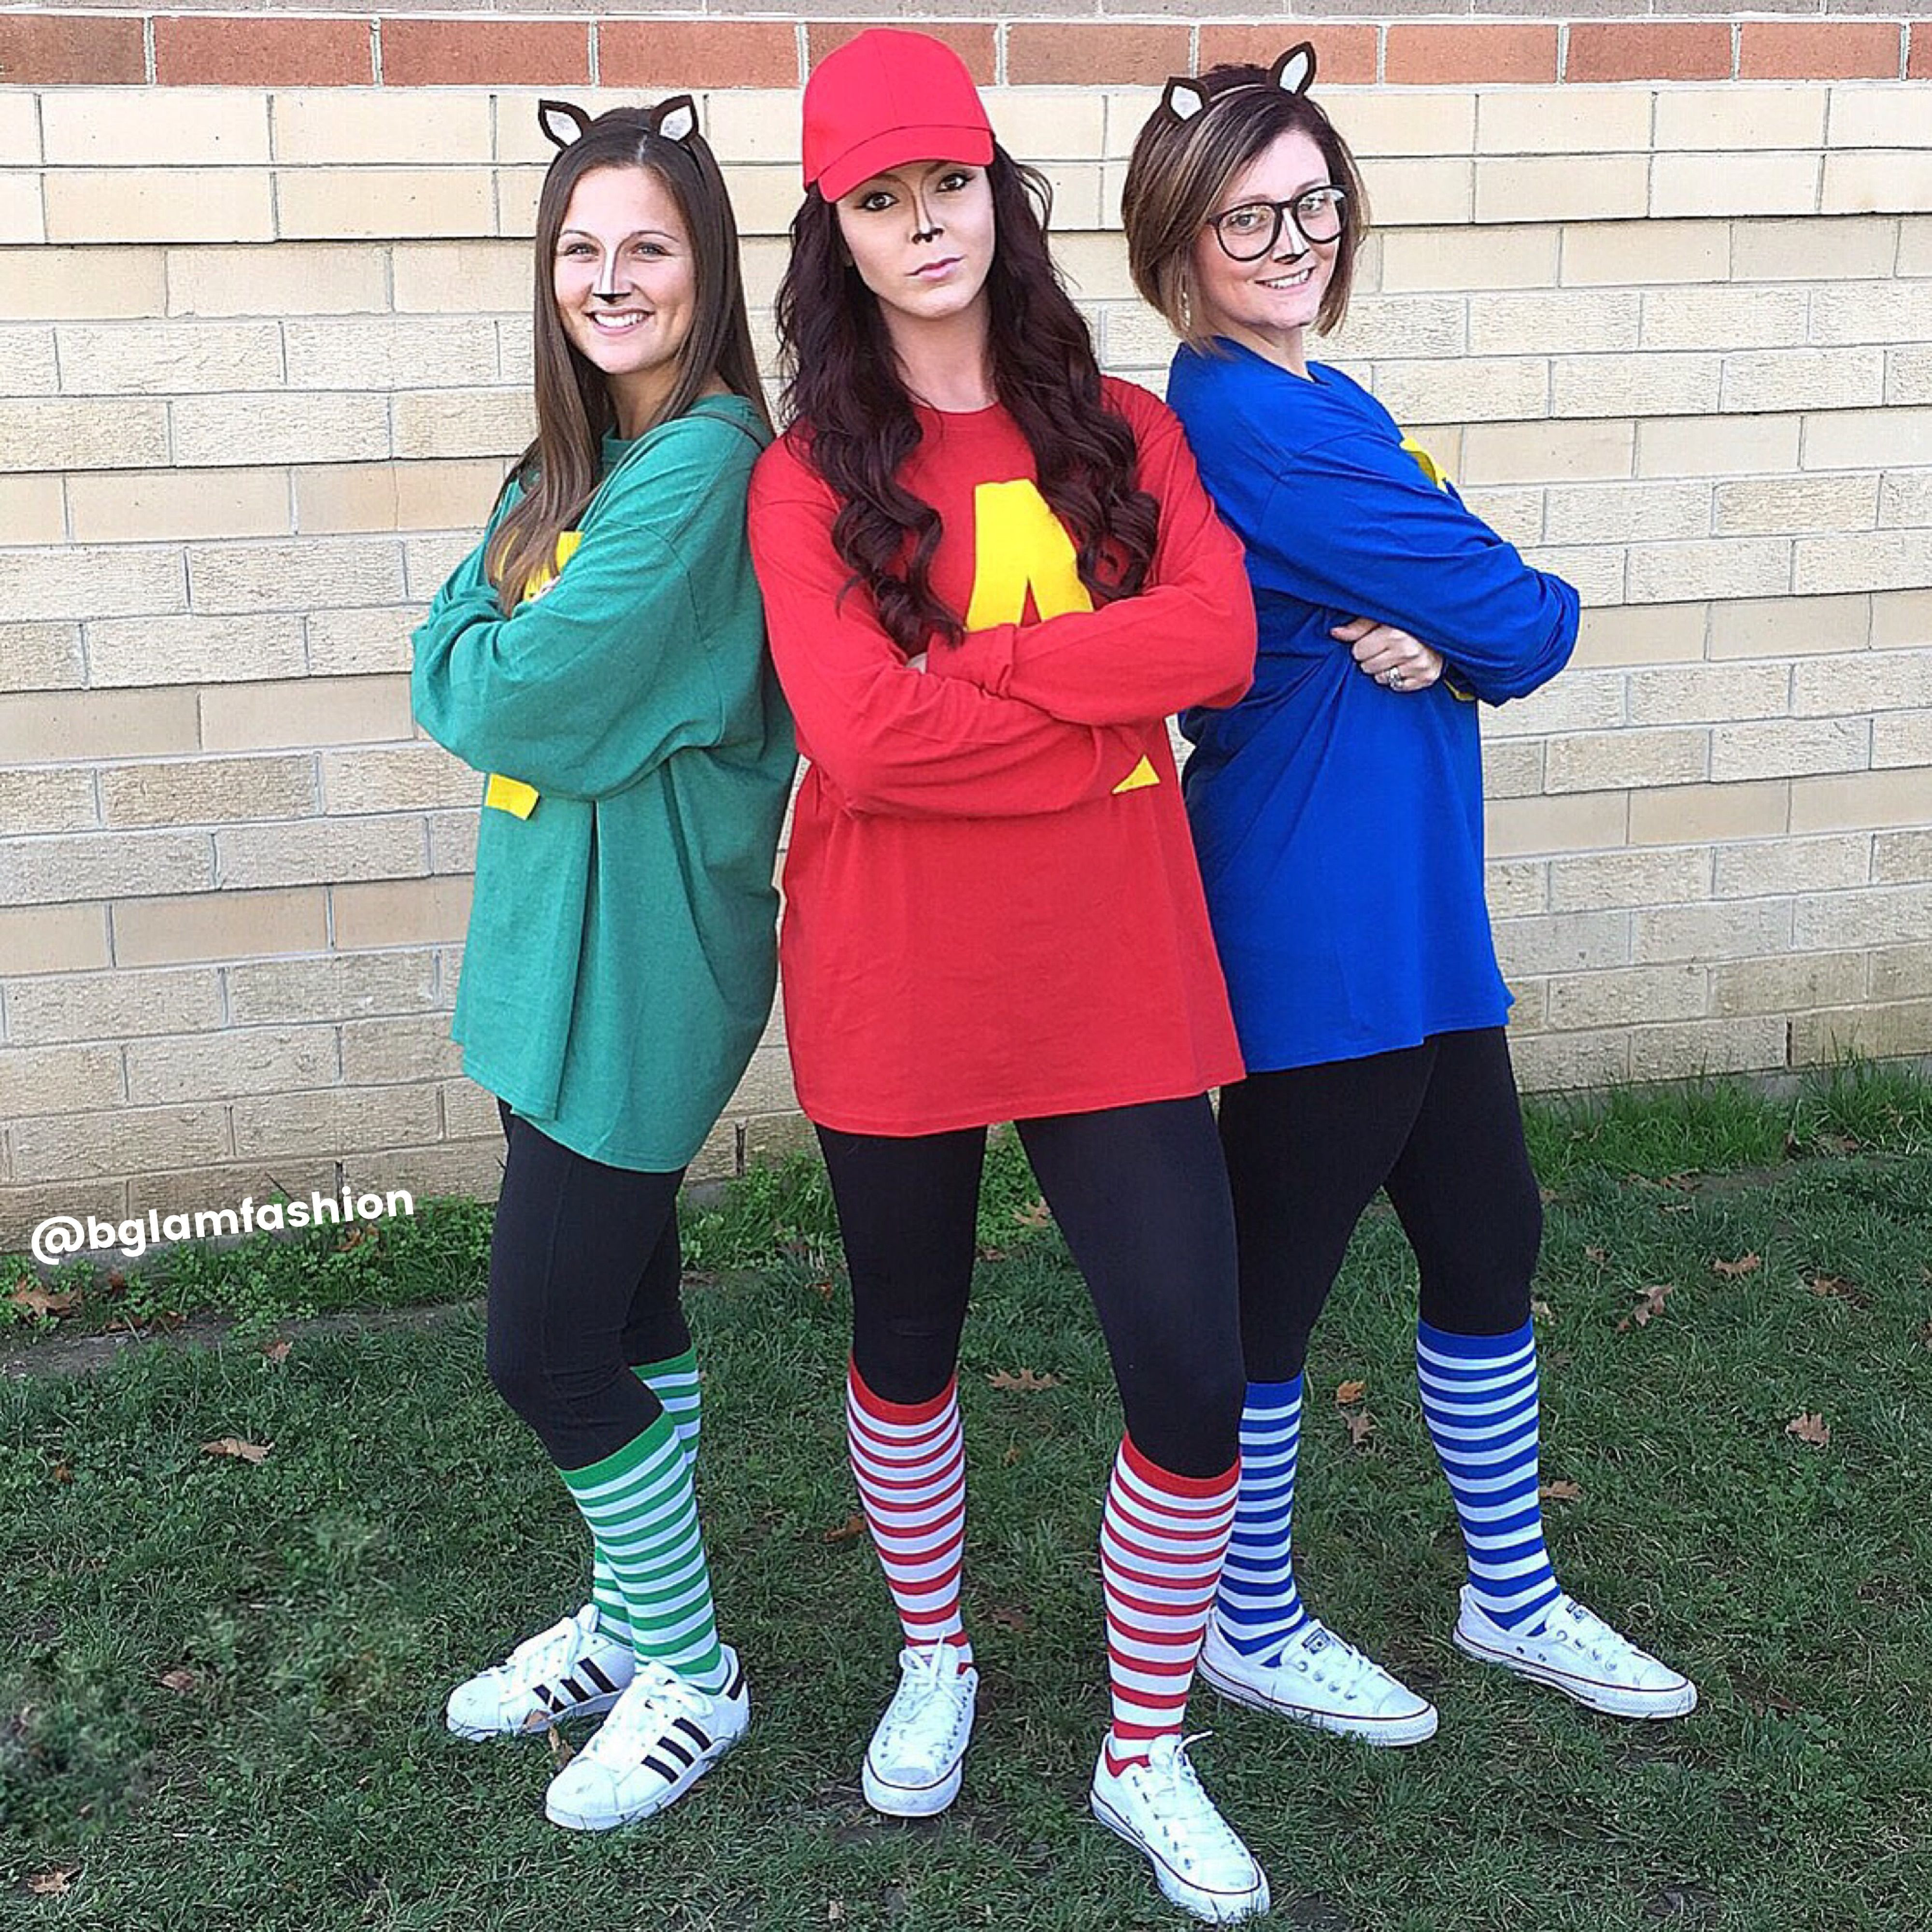 Best ideas about Alvin And The Chipmunks DIY Costume . Save or Pin Diy Alvin and the chipmunks costumes were the best ideas Now.